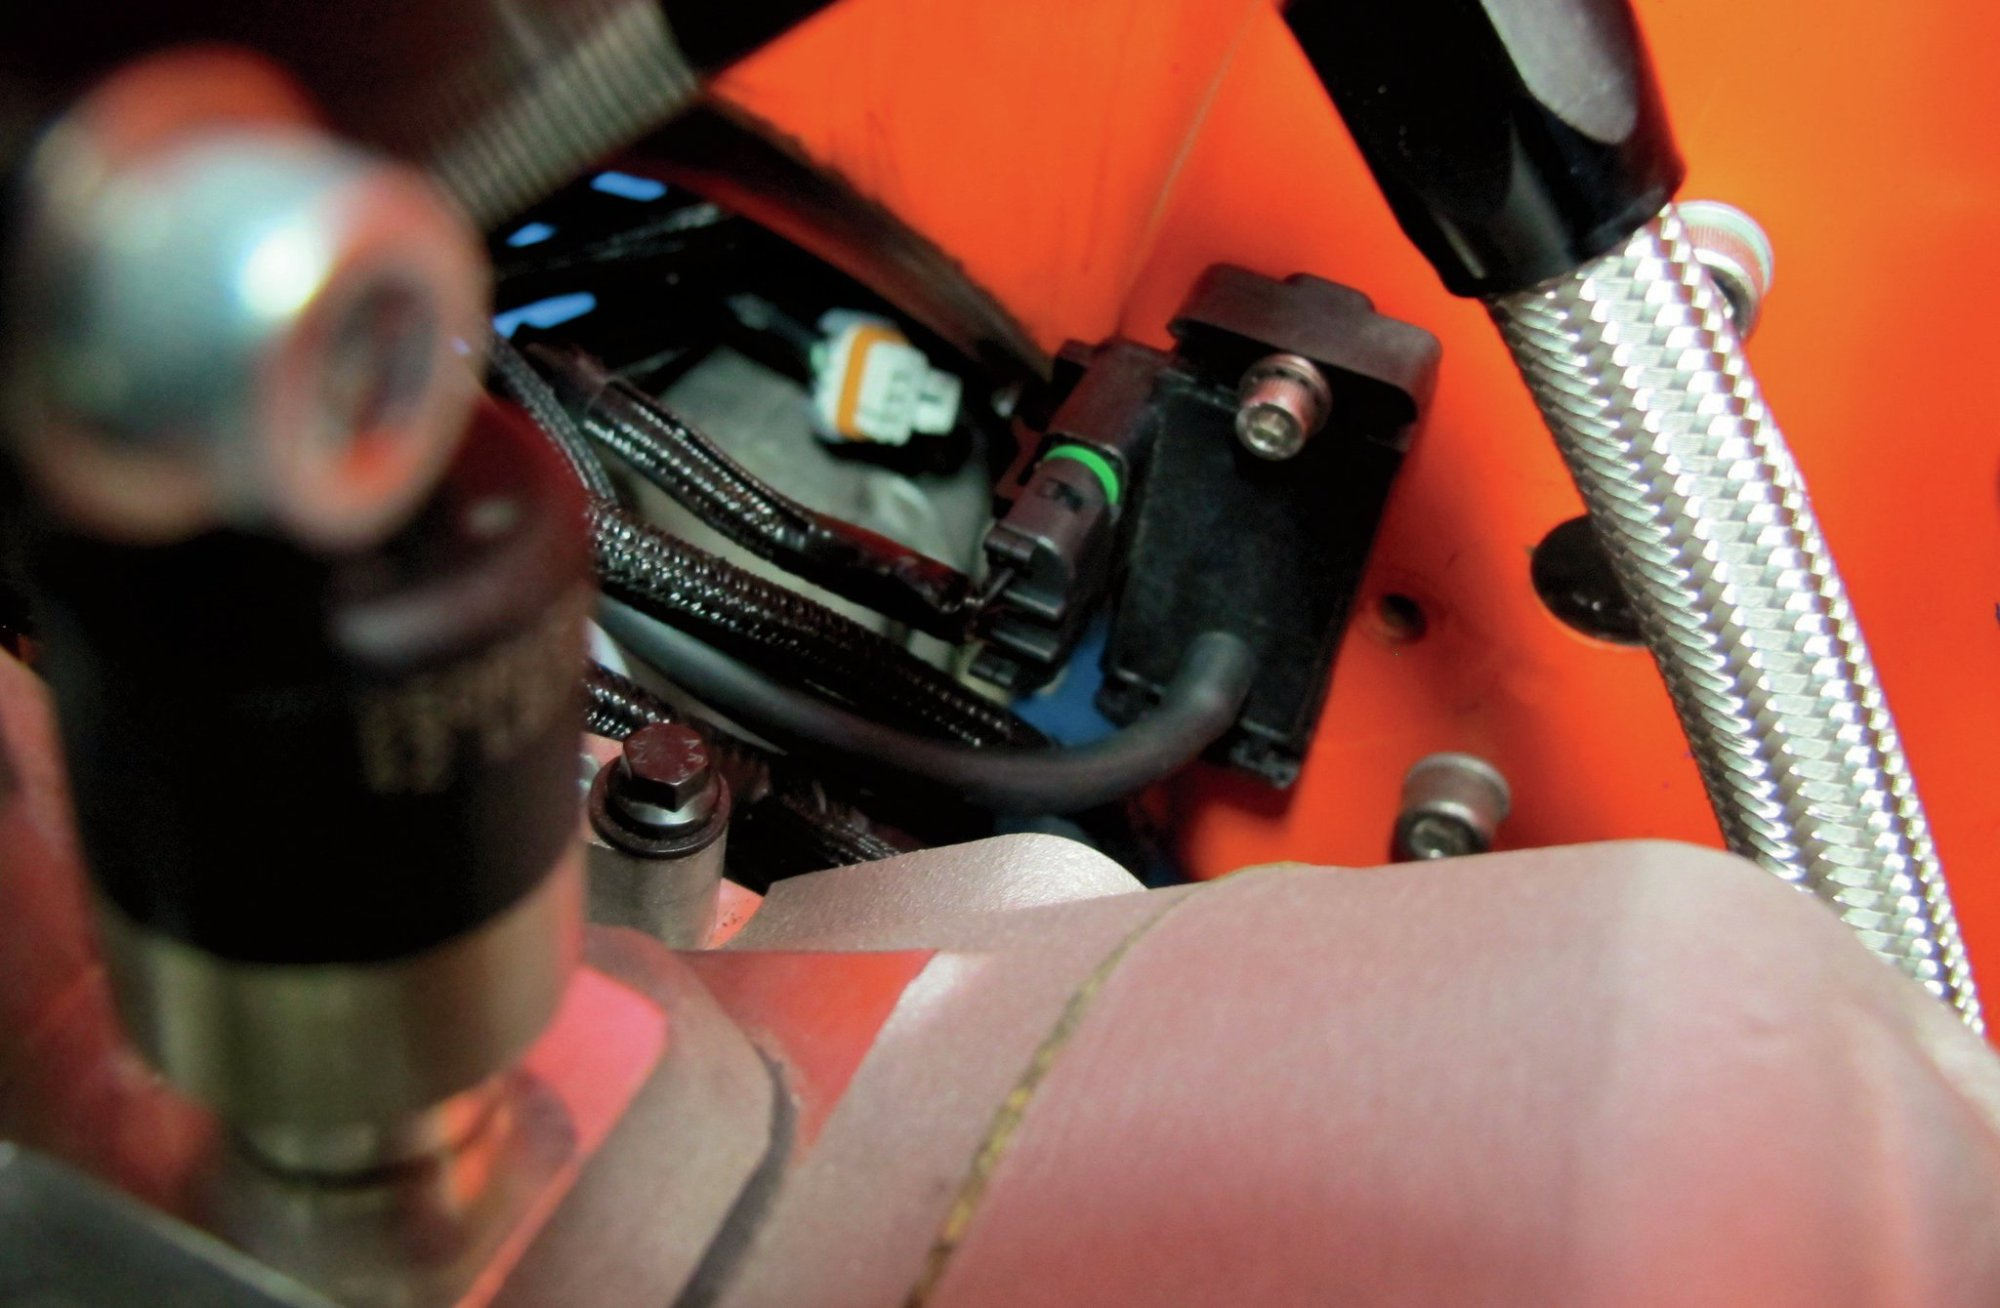 hight resolution of  taking a look at what makes an ls engine tick hot rod network sv 1 000 gm map sensor